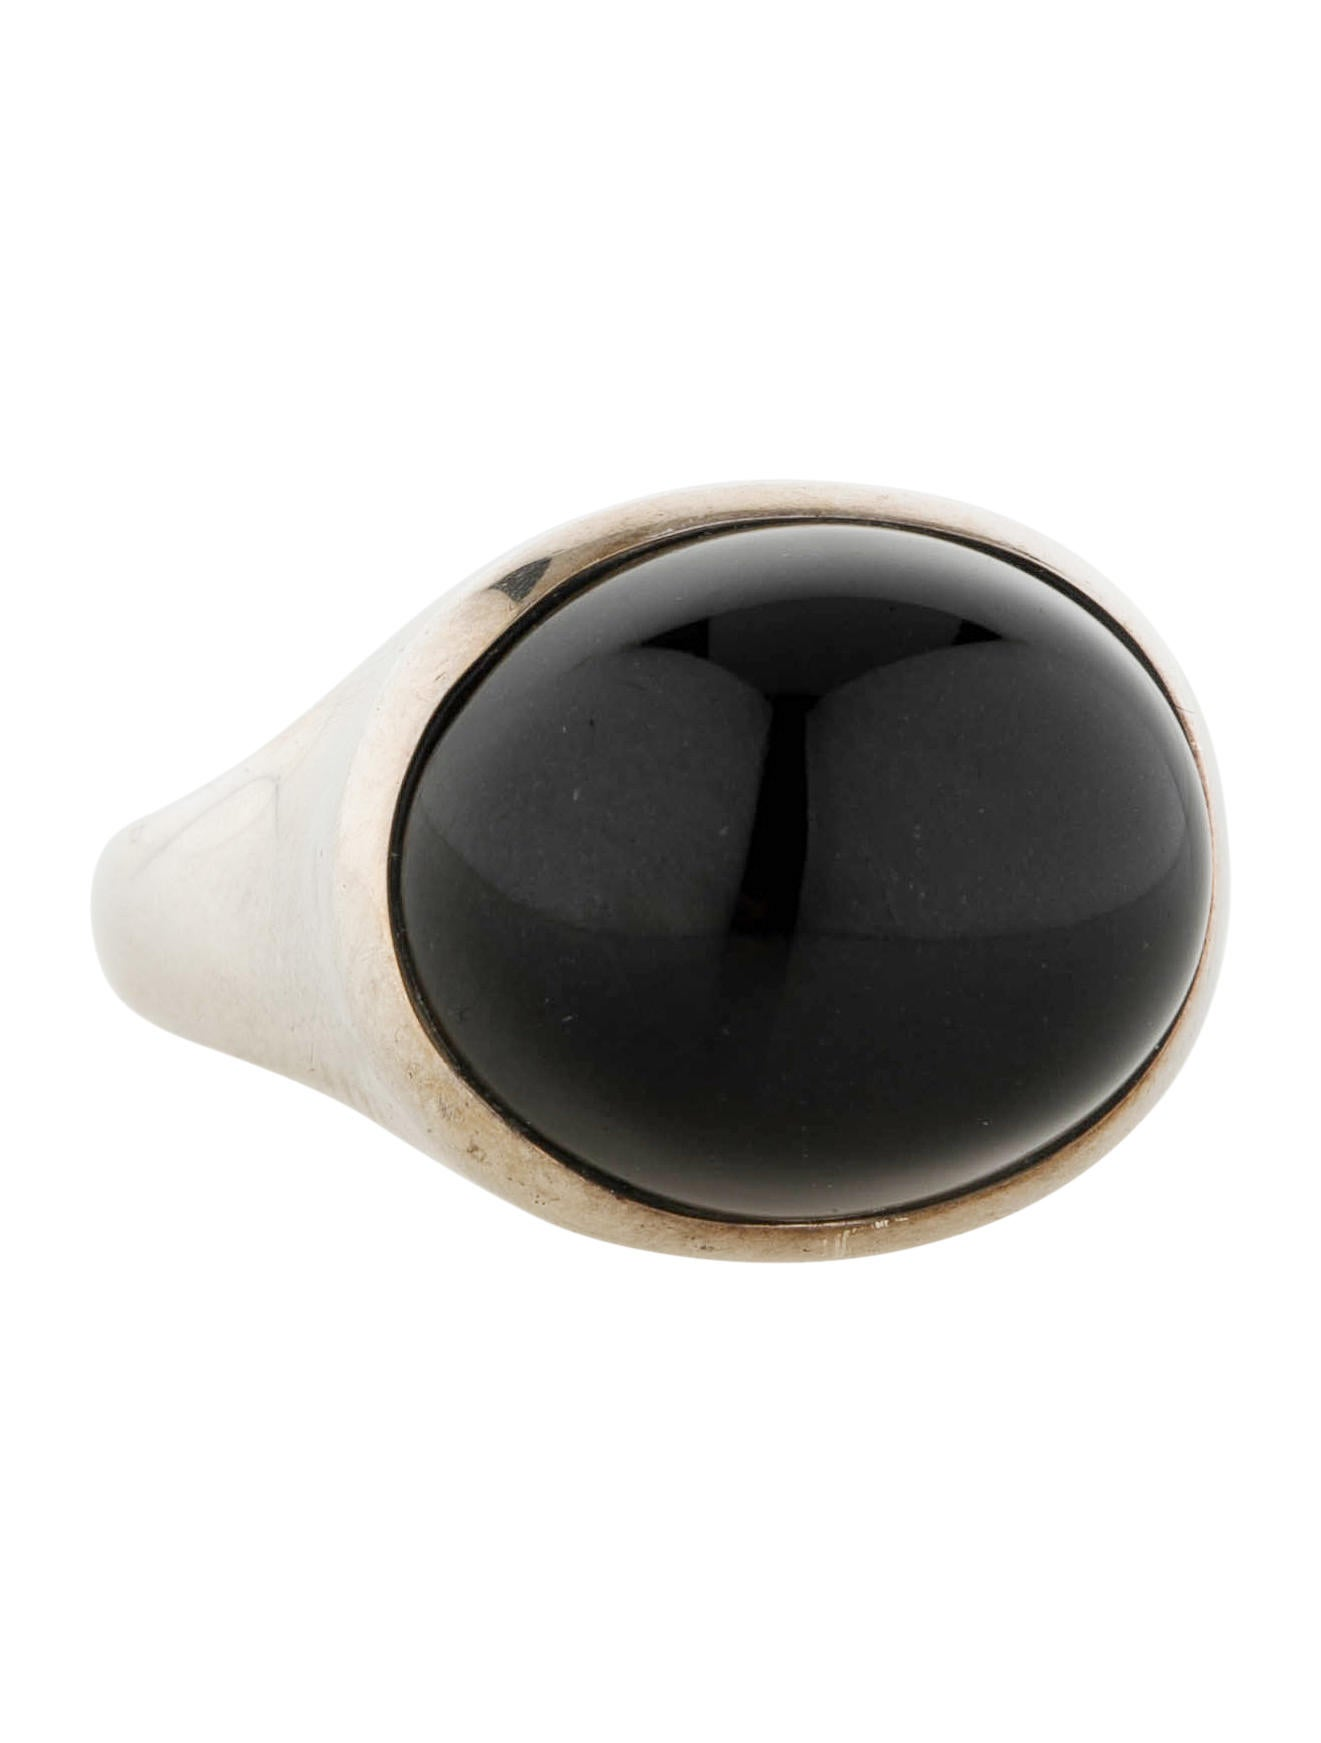 rings semi rose plated gold from in womens mounts black silver china item round ring sterling jewelry jade onyx rhinestone